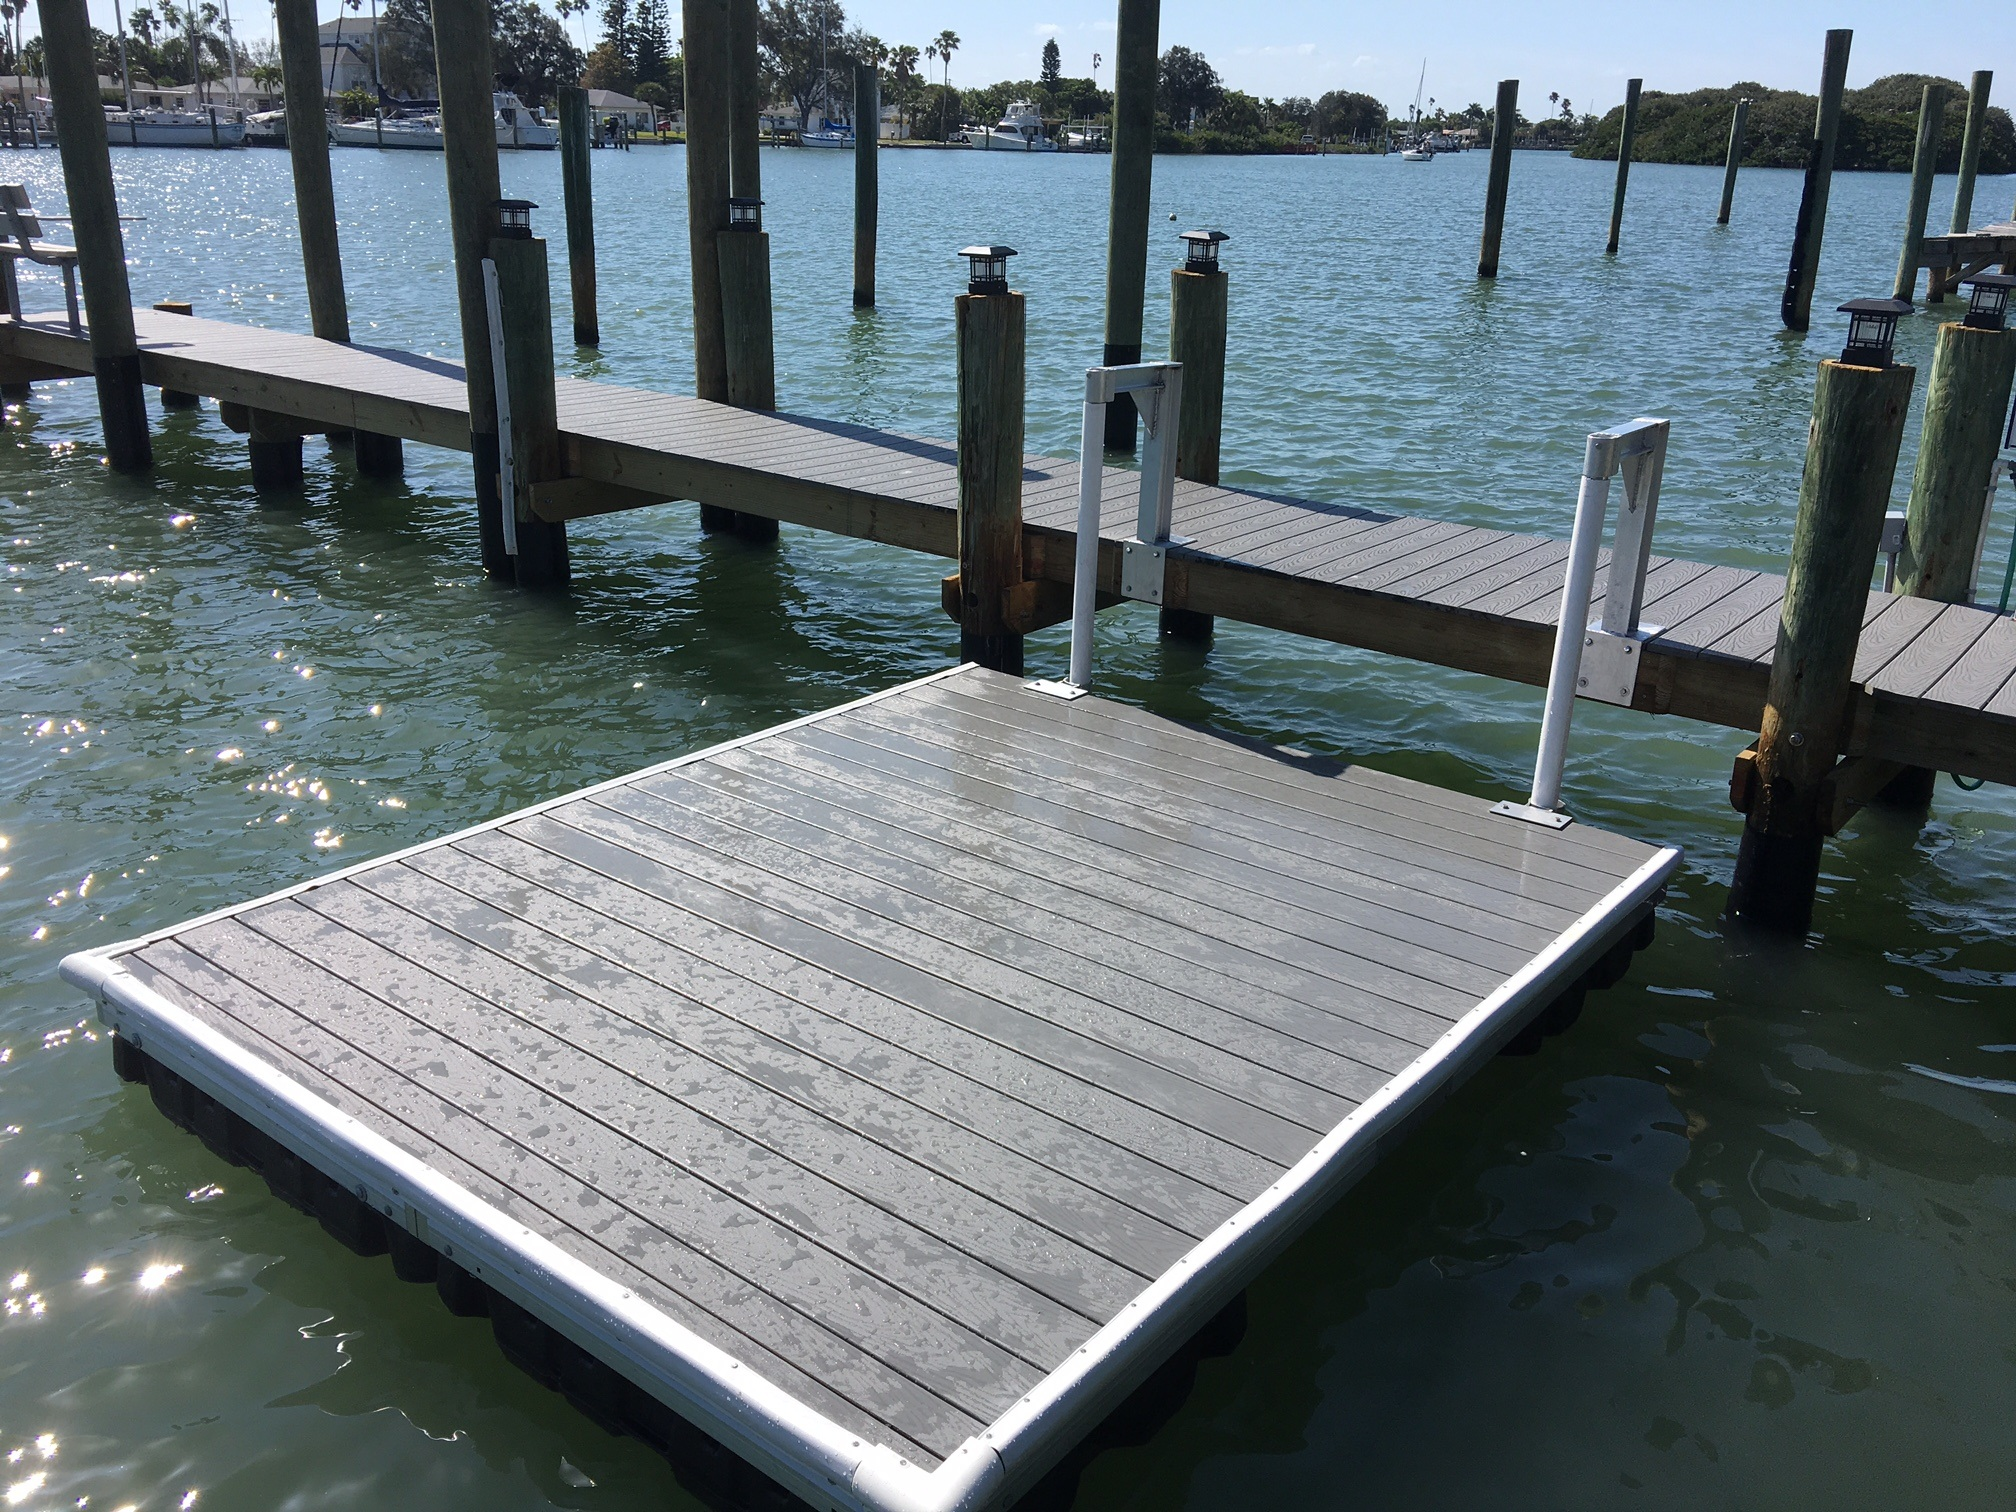 Composite Trex floating dock with pipe slides attached to stationary dock on the water